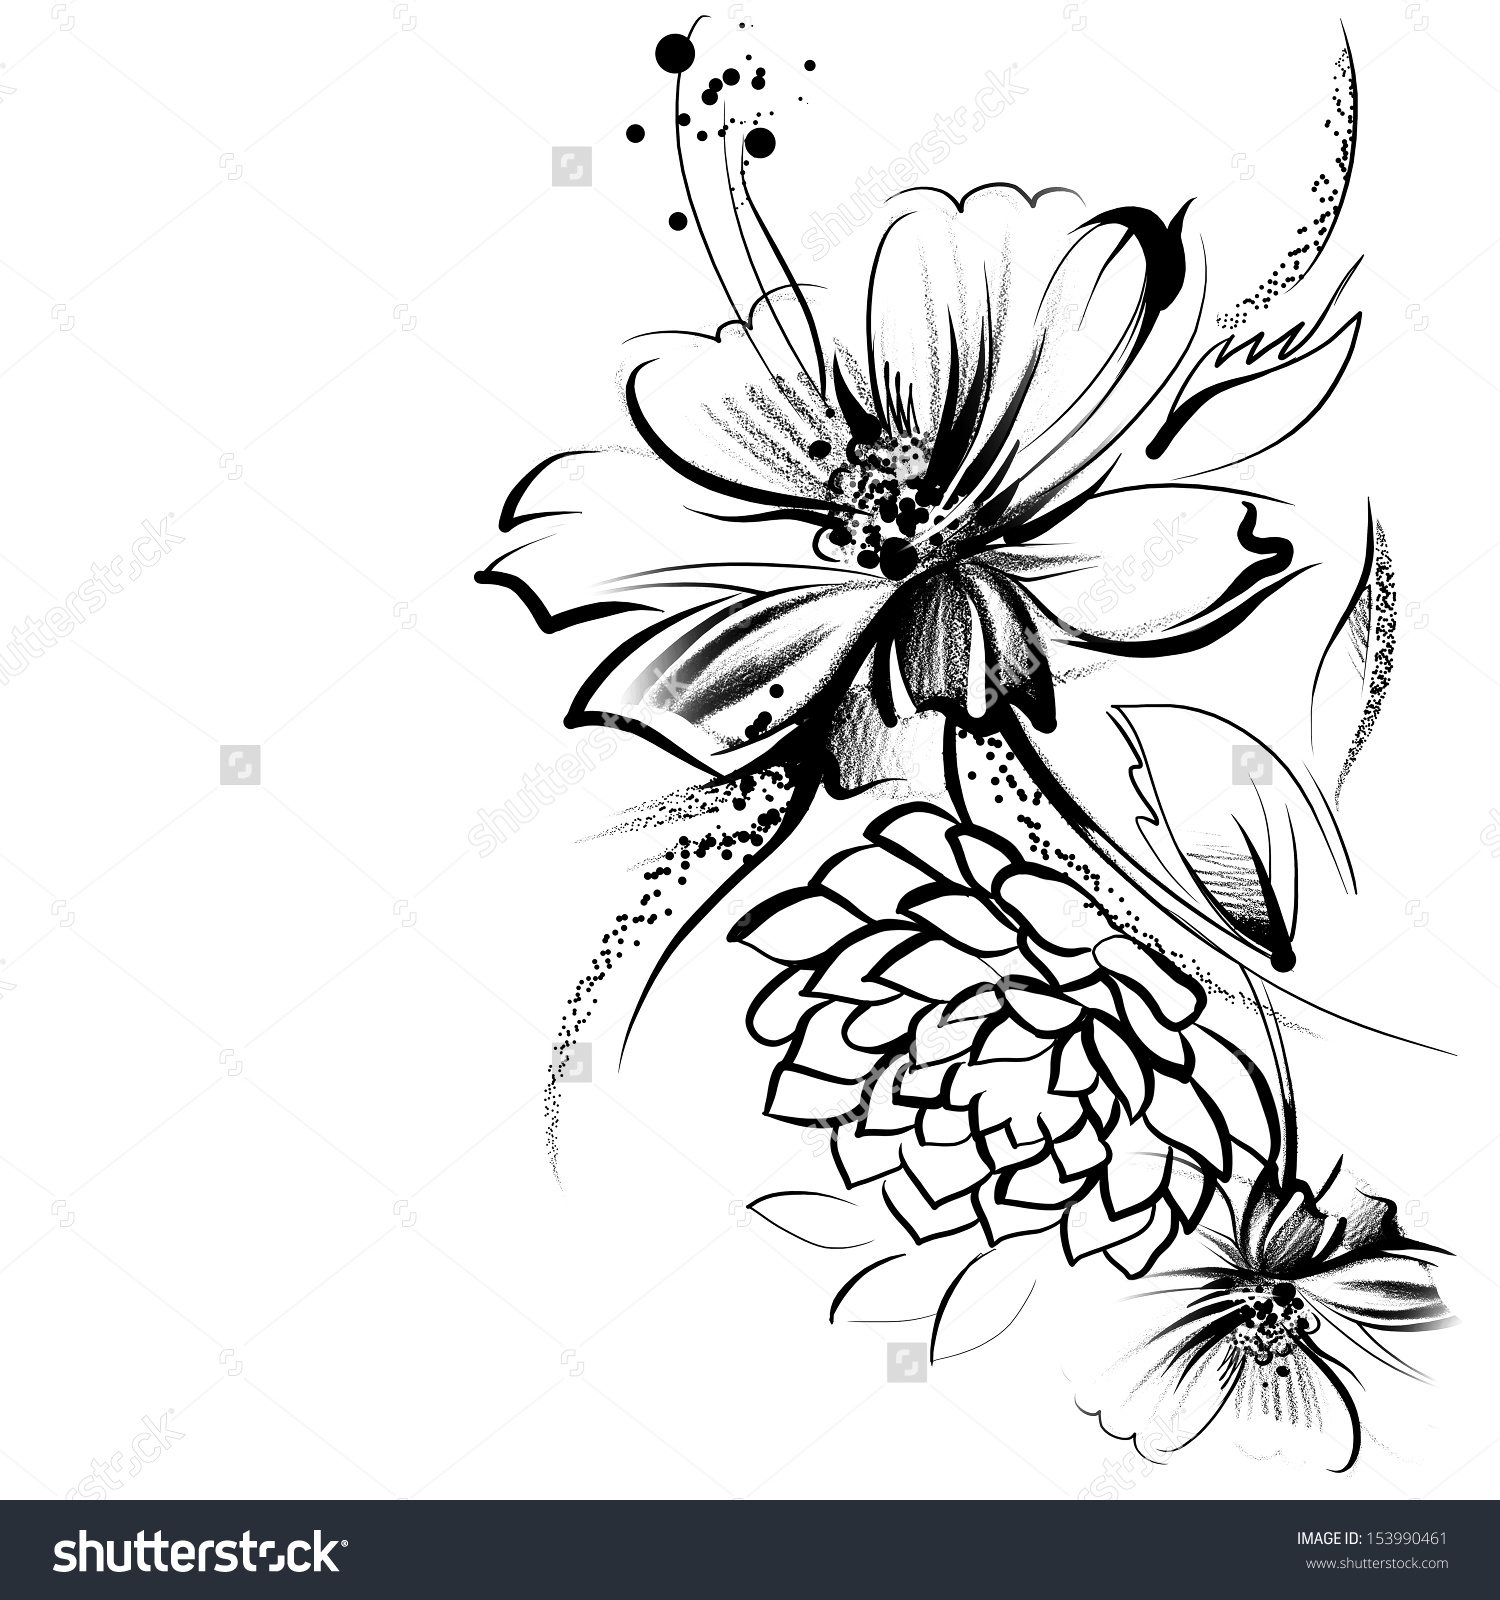 1500x1600 Flower Pencil Drawing Images E2 80 93 Art Abstract Drawings ~ Loversiq